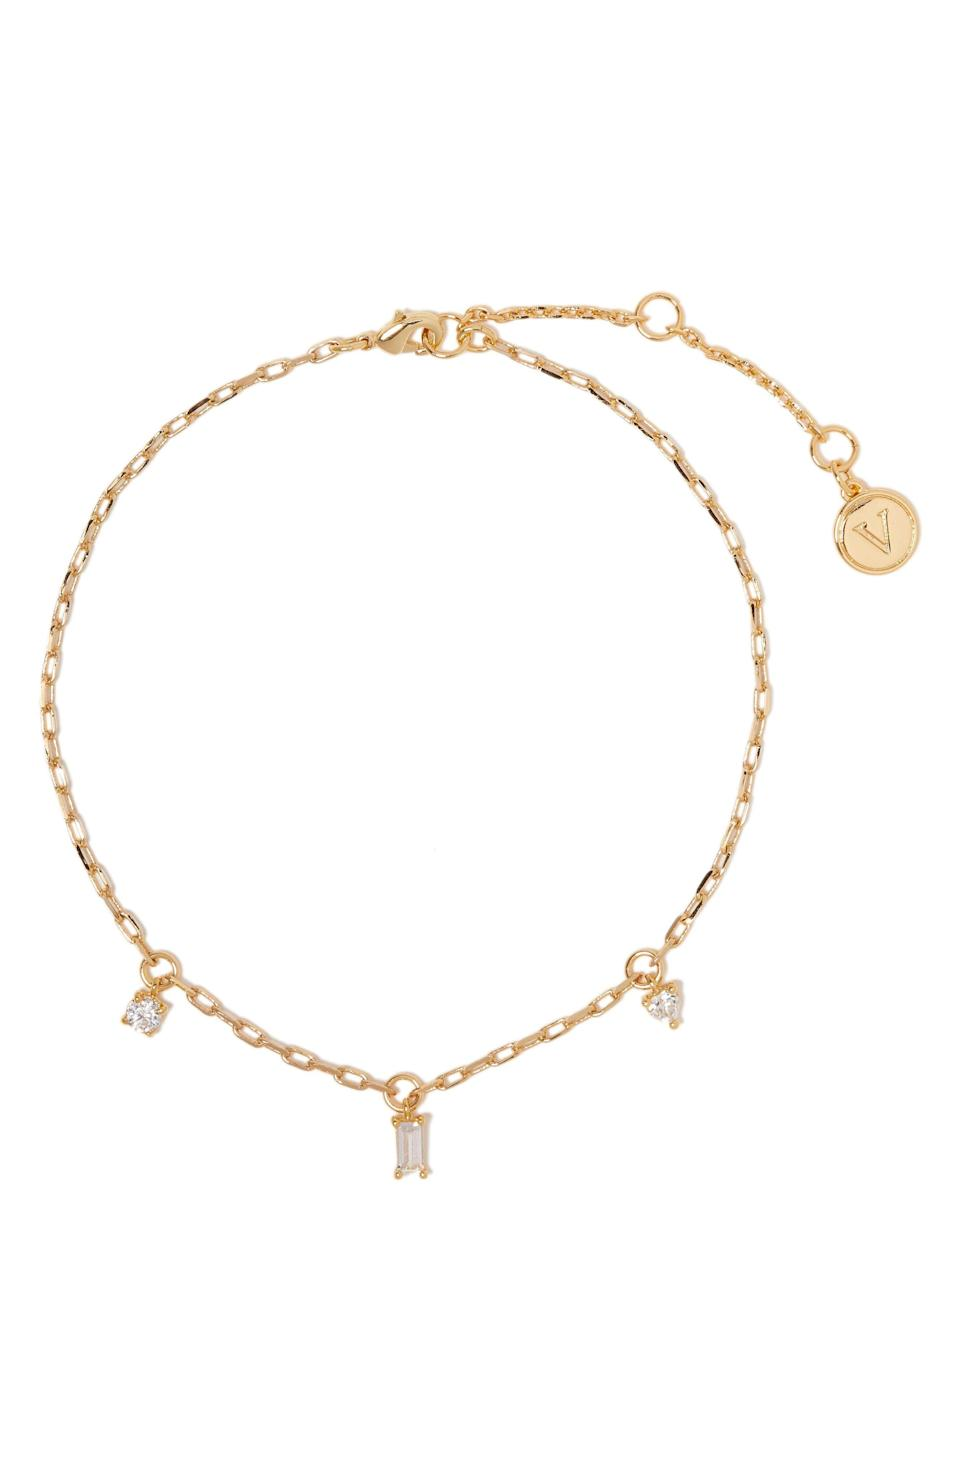 """<p><strong>VINCE CAMUTO</strong></p><p>nordstrom.com</p><p><strong>$16.80</strong></p><p><a href=""""https://go.redirectingat.com?id=74968X1596630&url=https%3A%2F%2Fwww.nordstrom.com%2Fs%2Fvince-camuto-cubic-zirconia-chain-anklet%2F5798541&sref=https%3A%2F%2Fwww.womenshealthmag.com%2Flife%2Fg36999215%2Fviral-tiktok-items-nordstrom-sale%2F"""" rel=""""nofollow noopener"""" target=""""_blank"""" data-ylk=""""slk:Shop Now"""" class=""""link rapid-noclick-resp"""">Shop Now</a></p><p>ICYMI: You can't have too much gold jewelry this season, and that includes the kind you'll wear on your feet. No, toe rings haven't made a comeback just yet, but these dainty little anklets are <em>everywhere</em>. </p><p>TikTok loves that these are an easy way to bling out everything from your simple black flats to sneaks.</p>"""